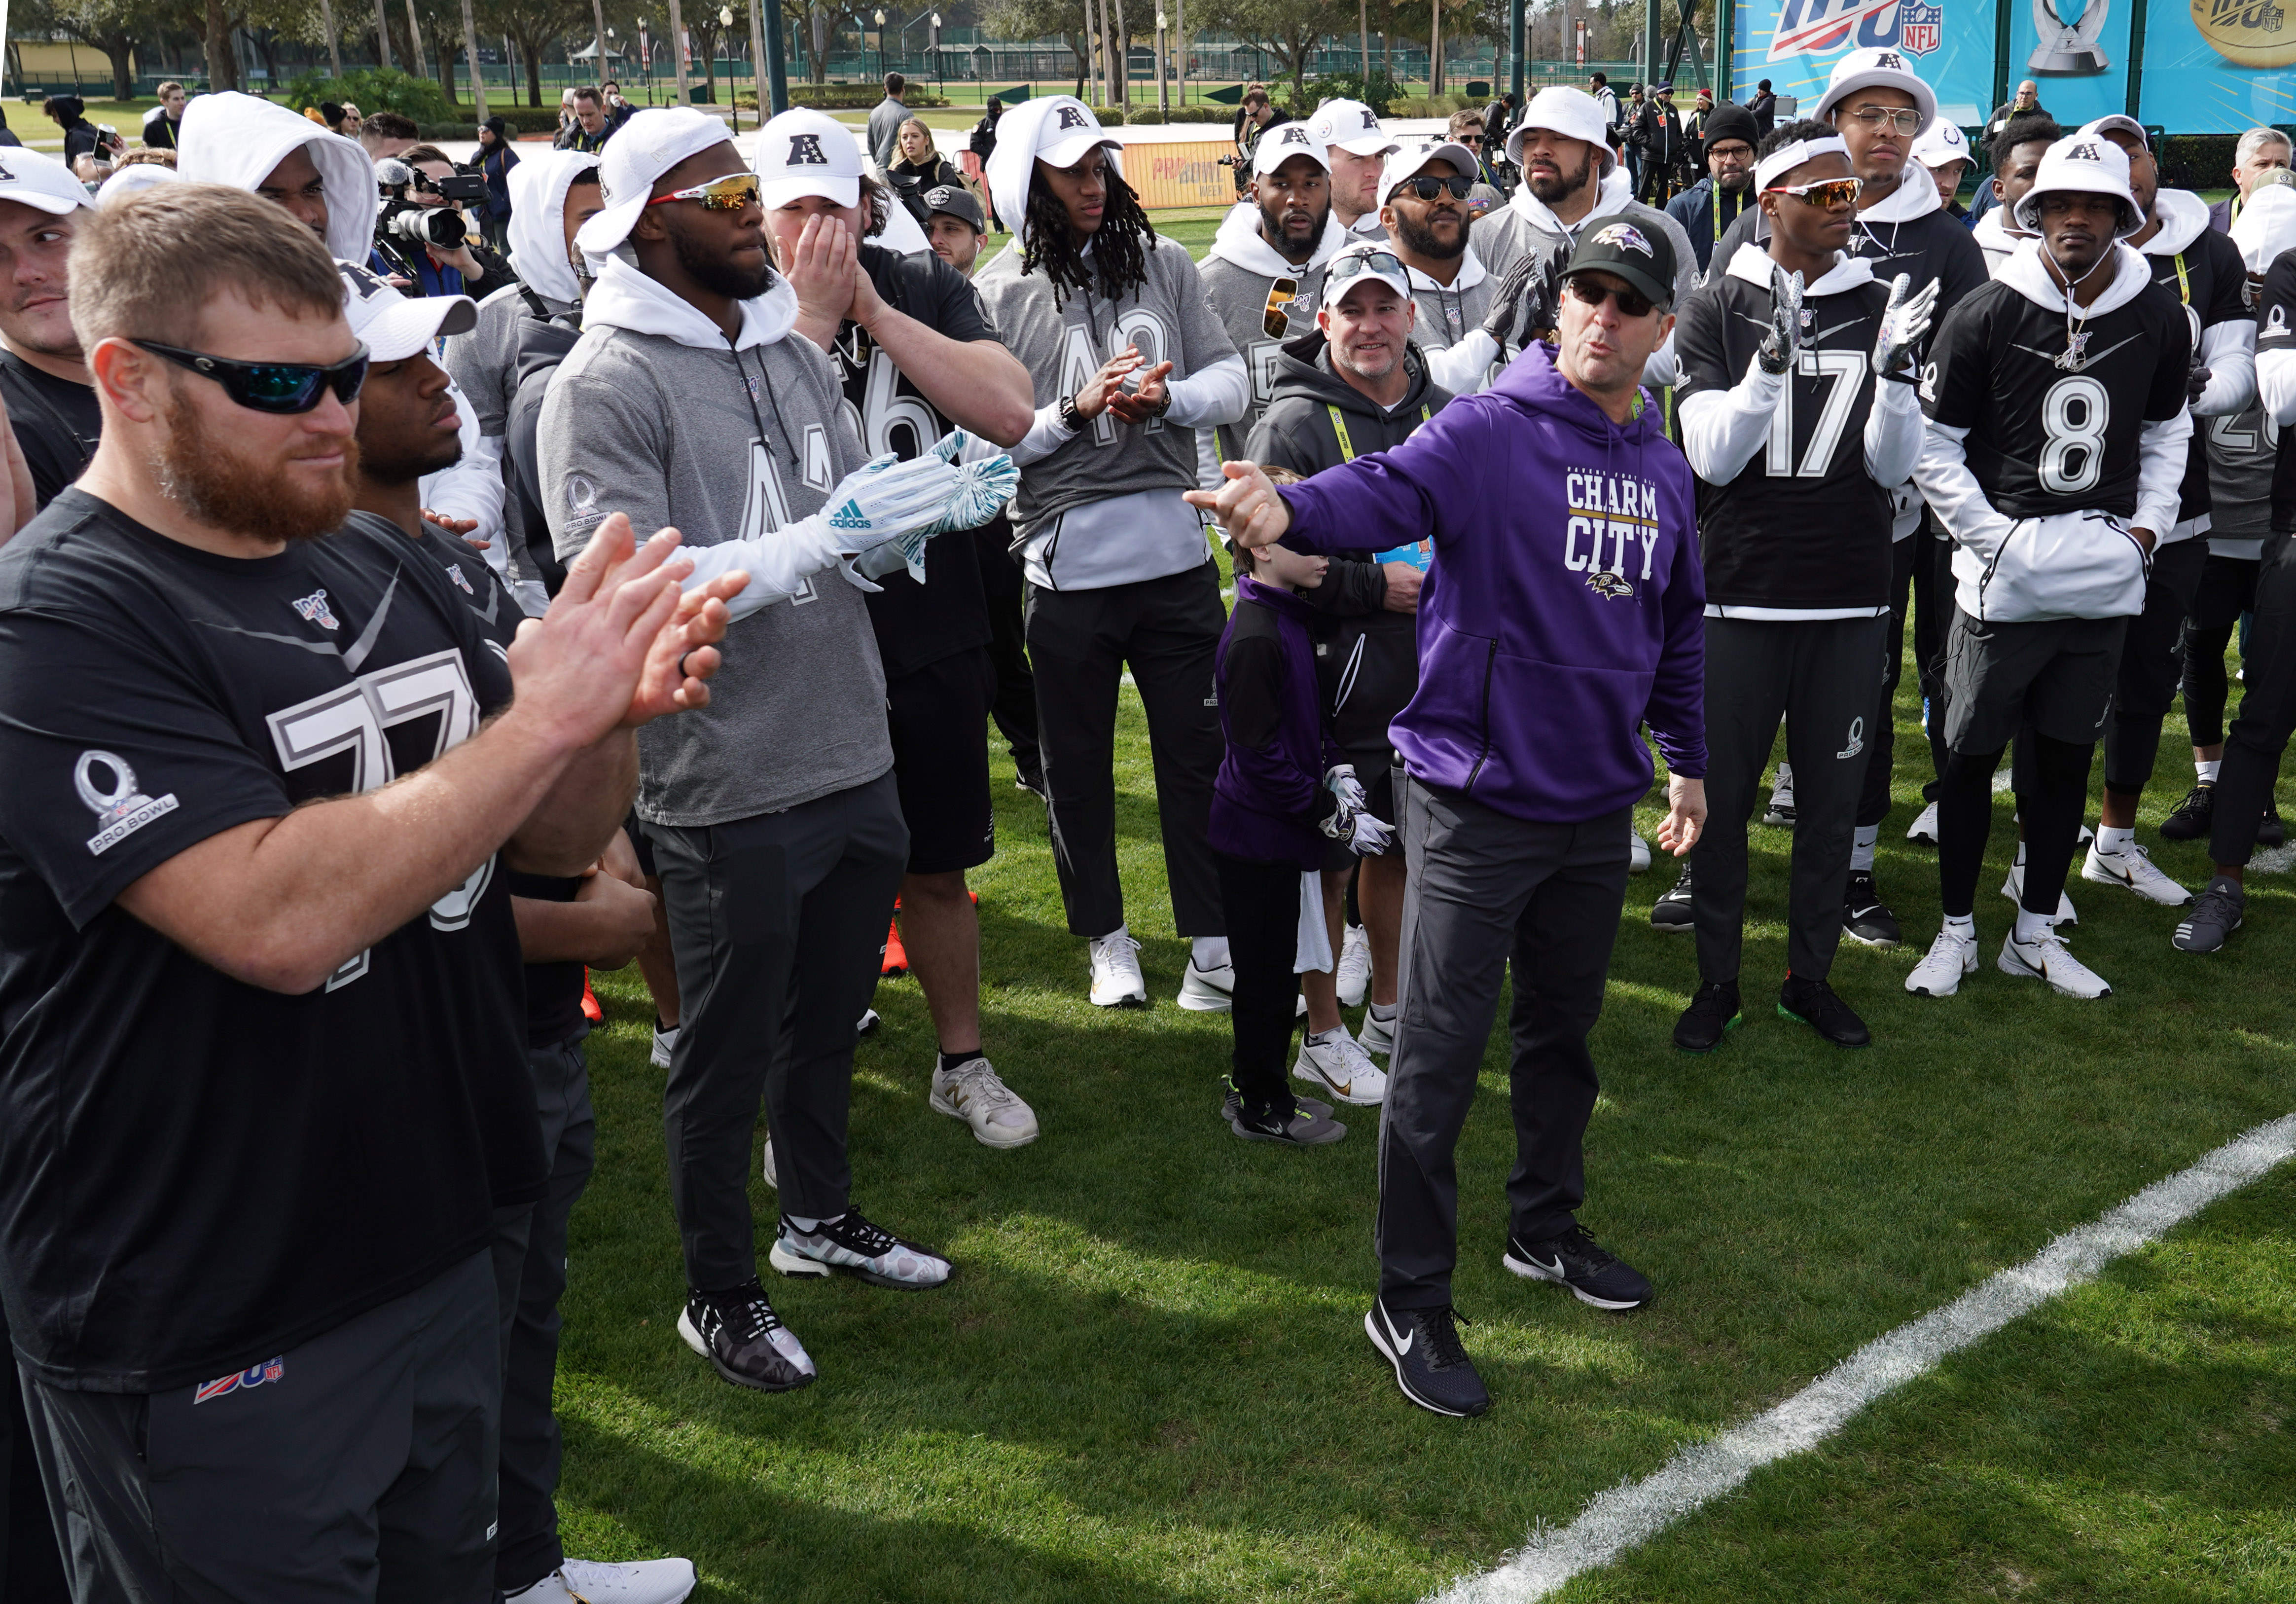 Ravens Hope Pro Bowl Experience Will Ease Some Pain